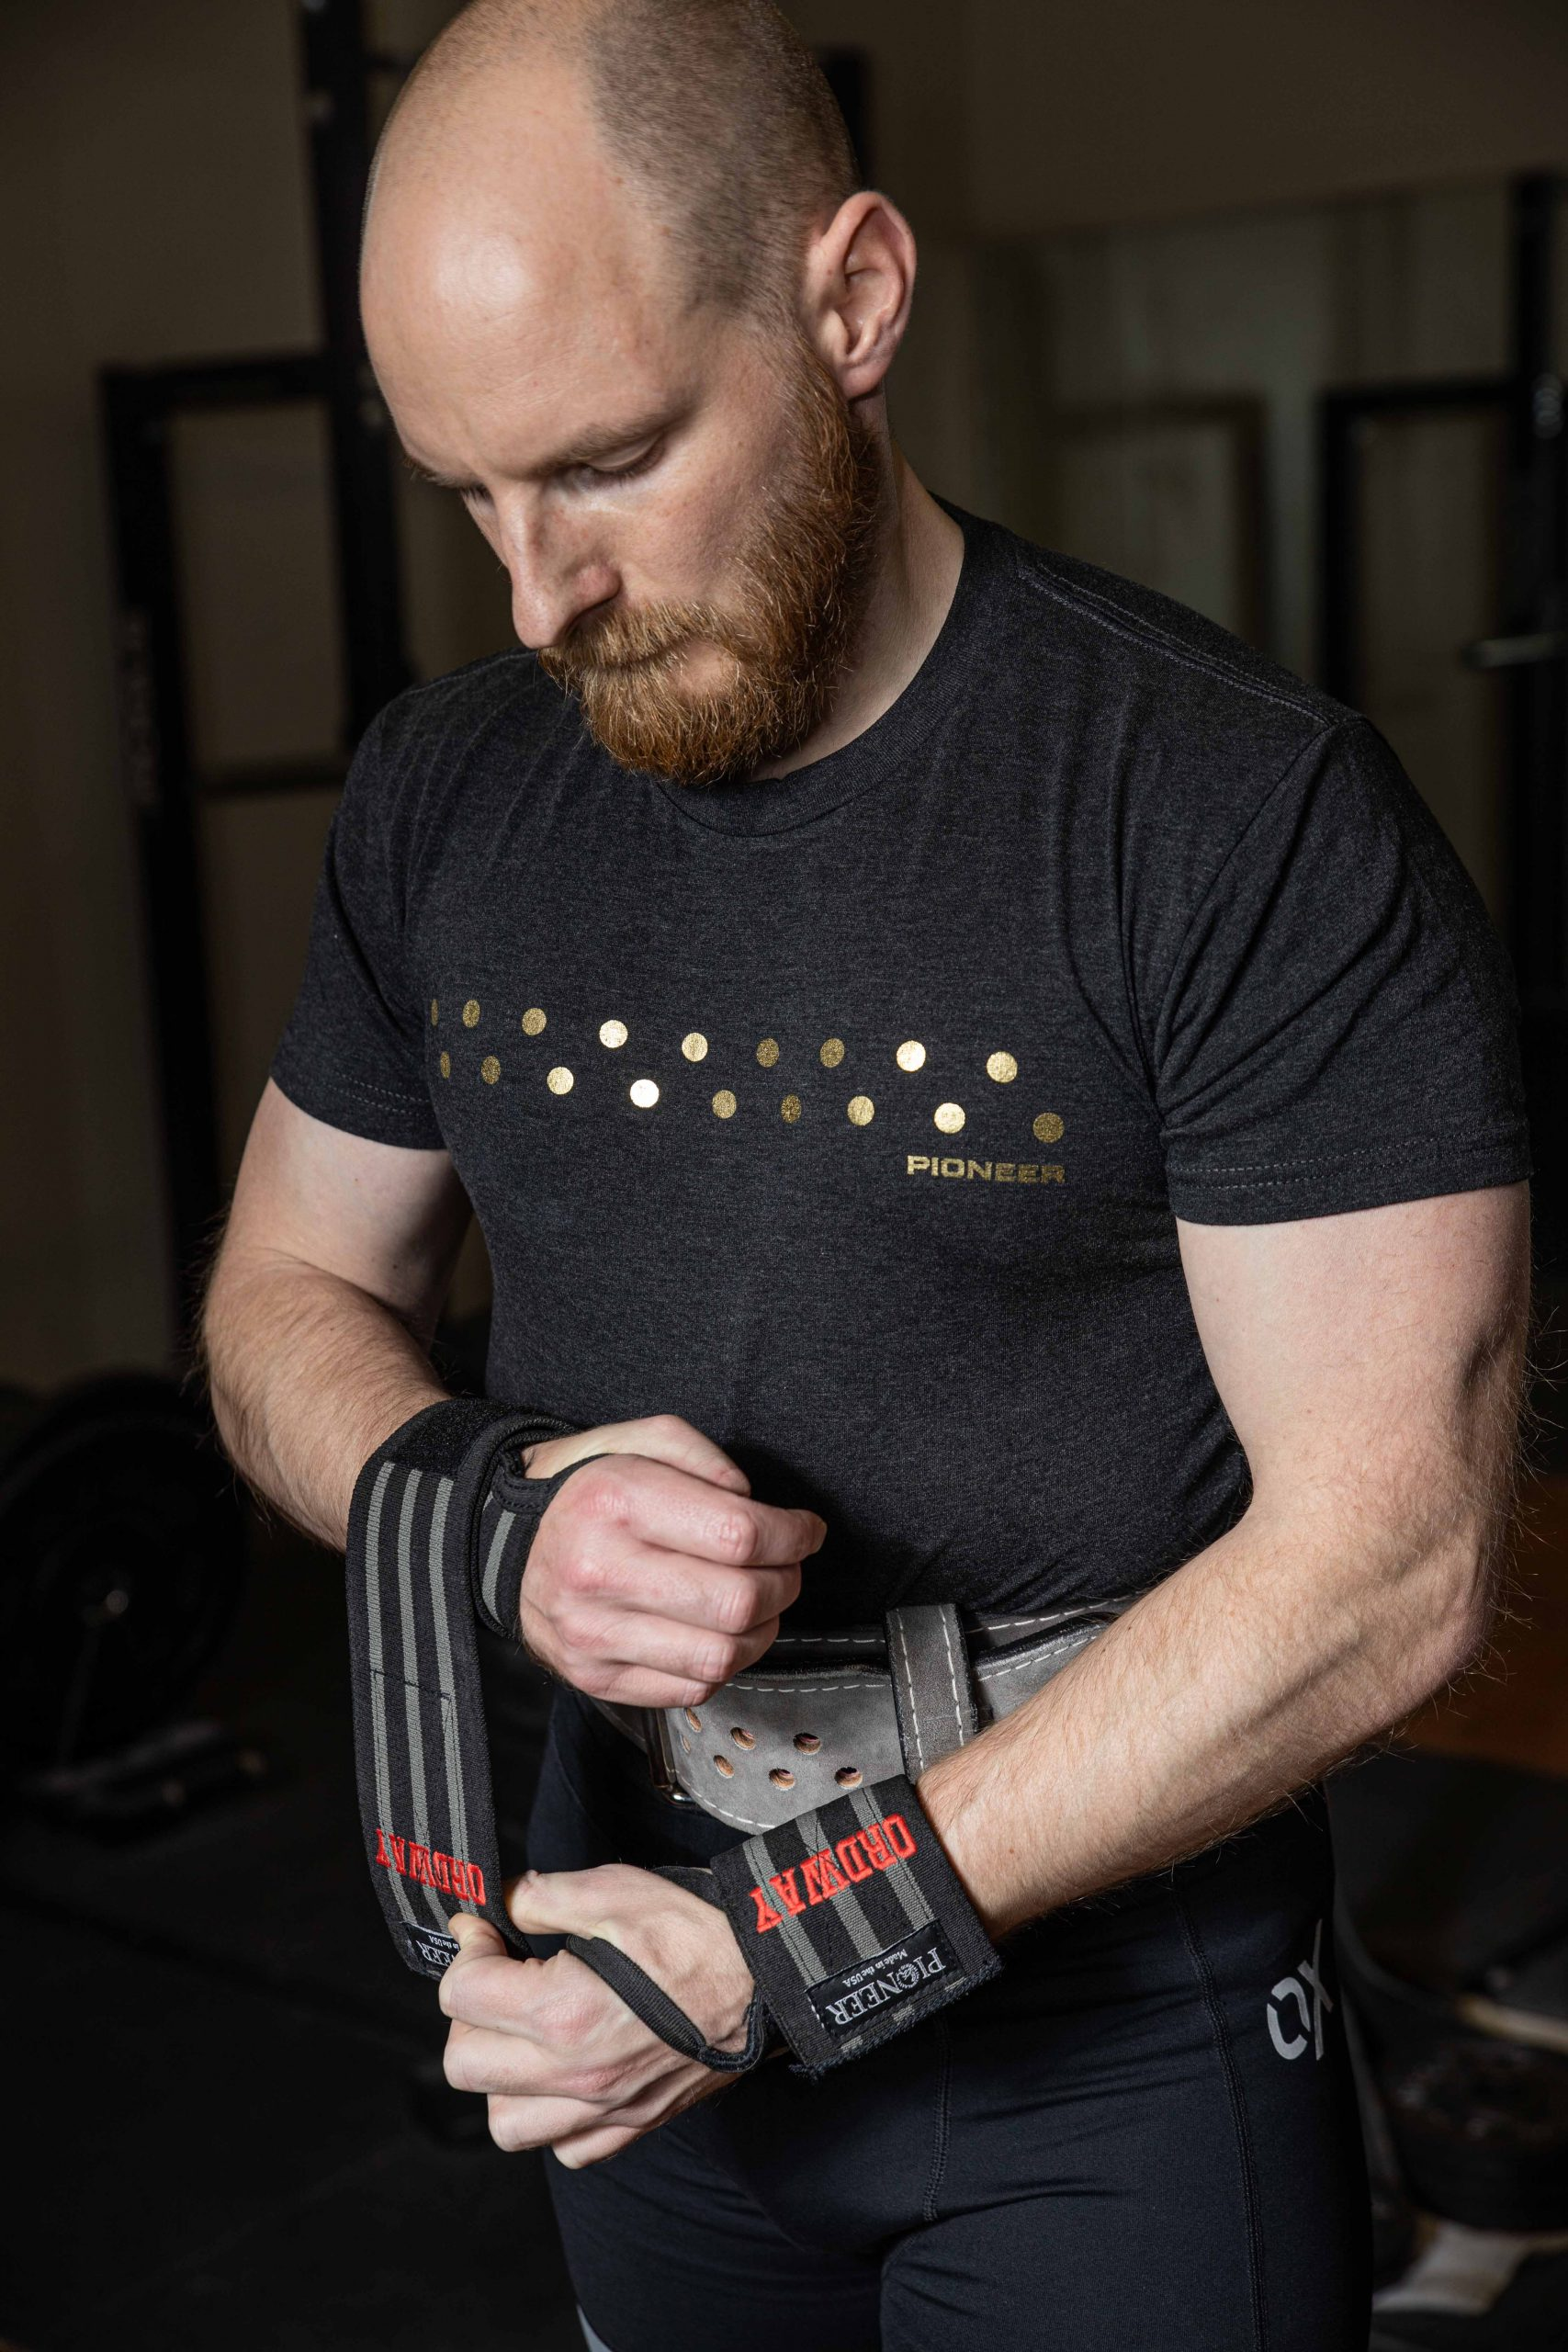 Robert Ordway with Pioneer wrist wraps